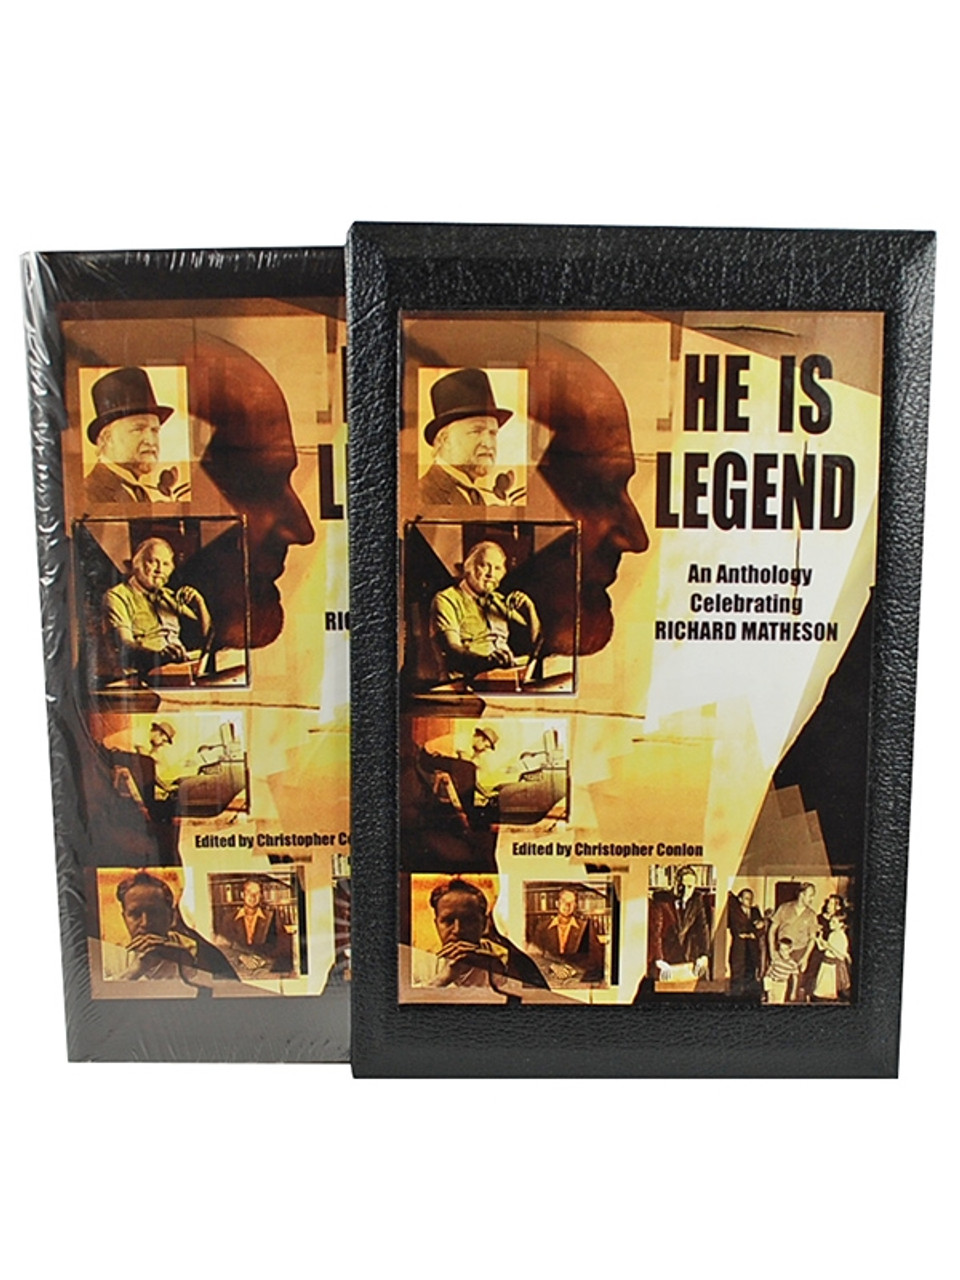 """He Is Legend"" Signed Limited Anthology, Stephen King, Joe Hill, and others Celebrating Richard Matheson"